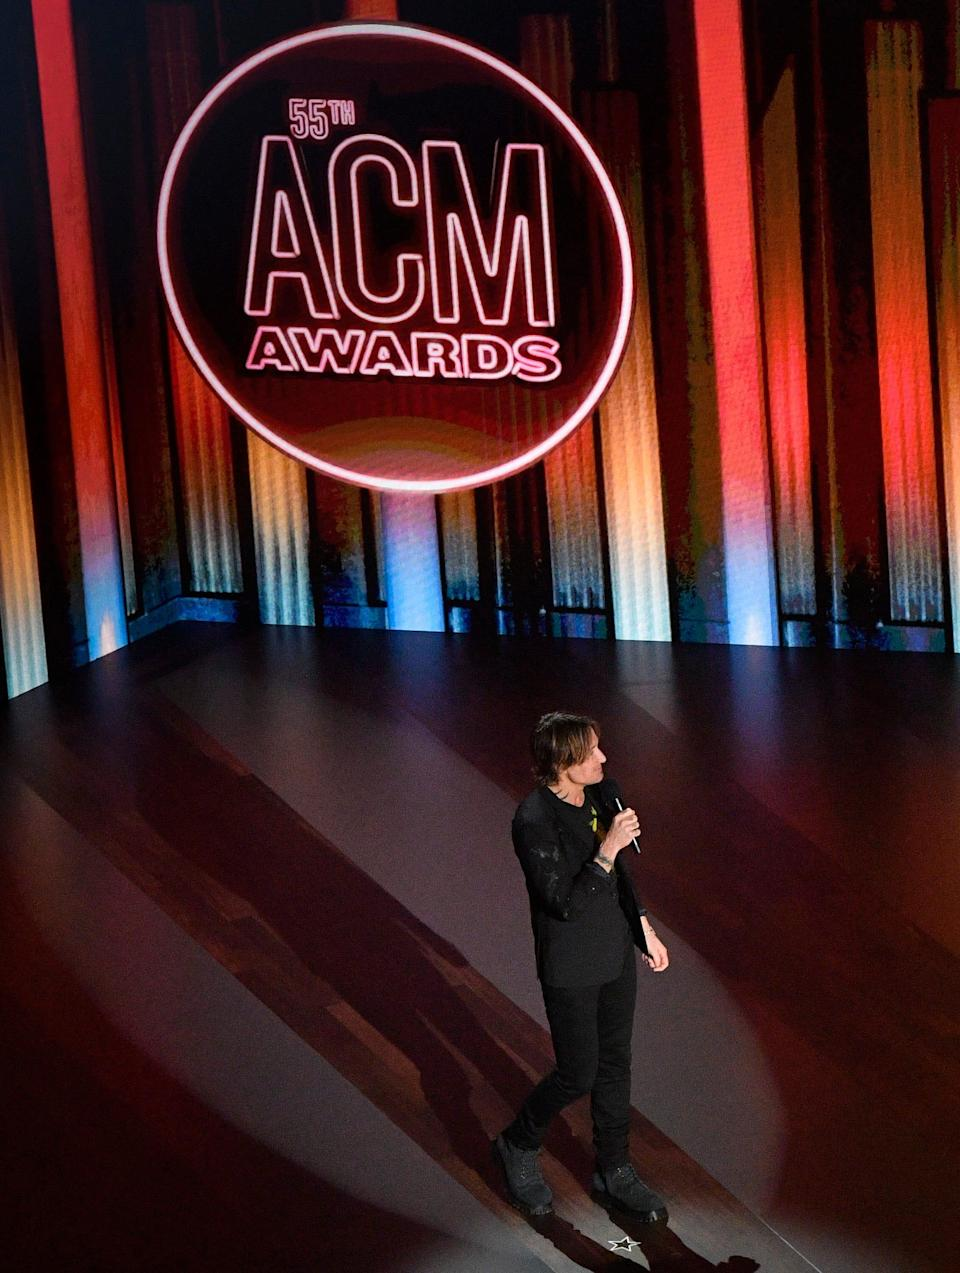 Keith Urban introduces Kane Brown's performance during the 55th Academy of Country Music Awards at the Grand Ole Opry Wednesday, Sept. 16, 2020 in Nashville, Tenn.